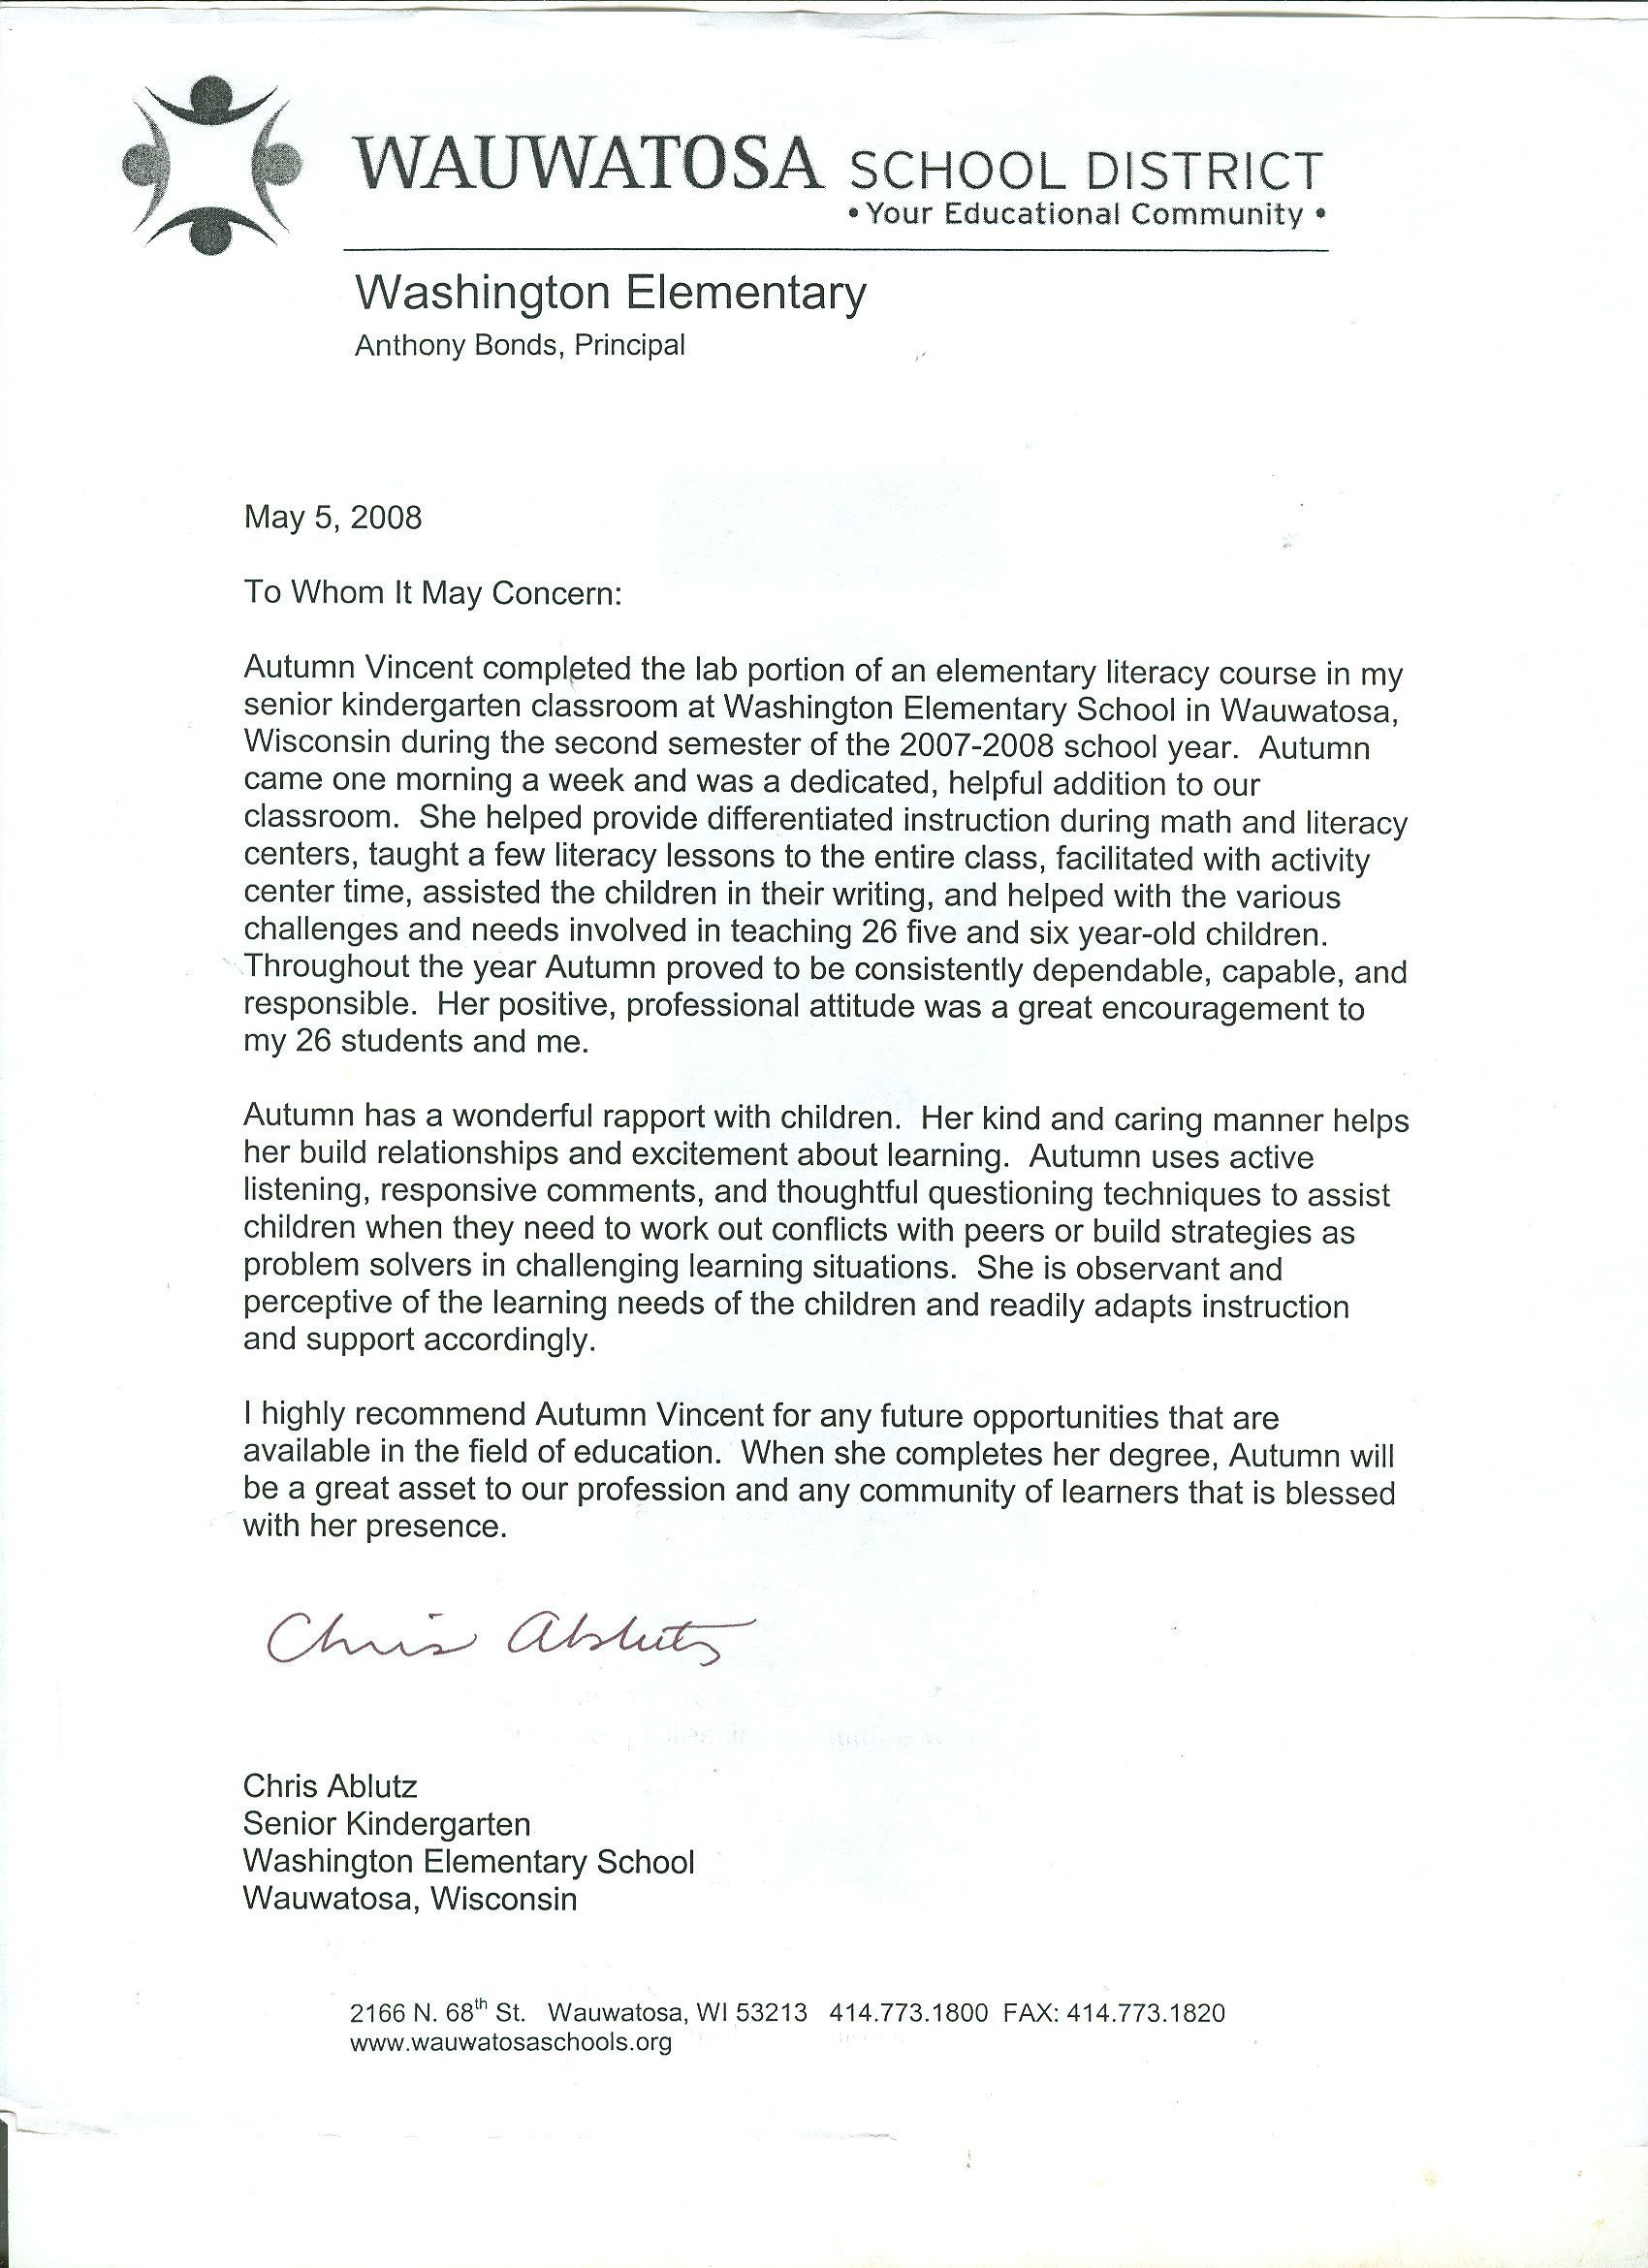 006 Stirring Letter Of Recommendation For Student Teacher From Cooperating Template Image Full